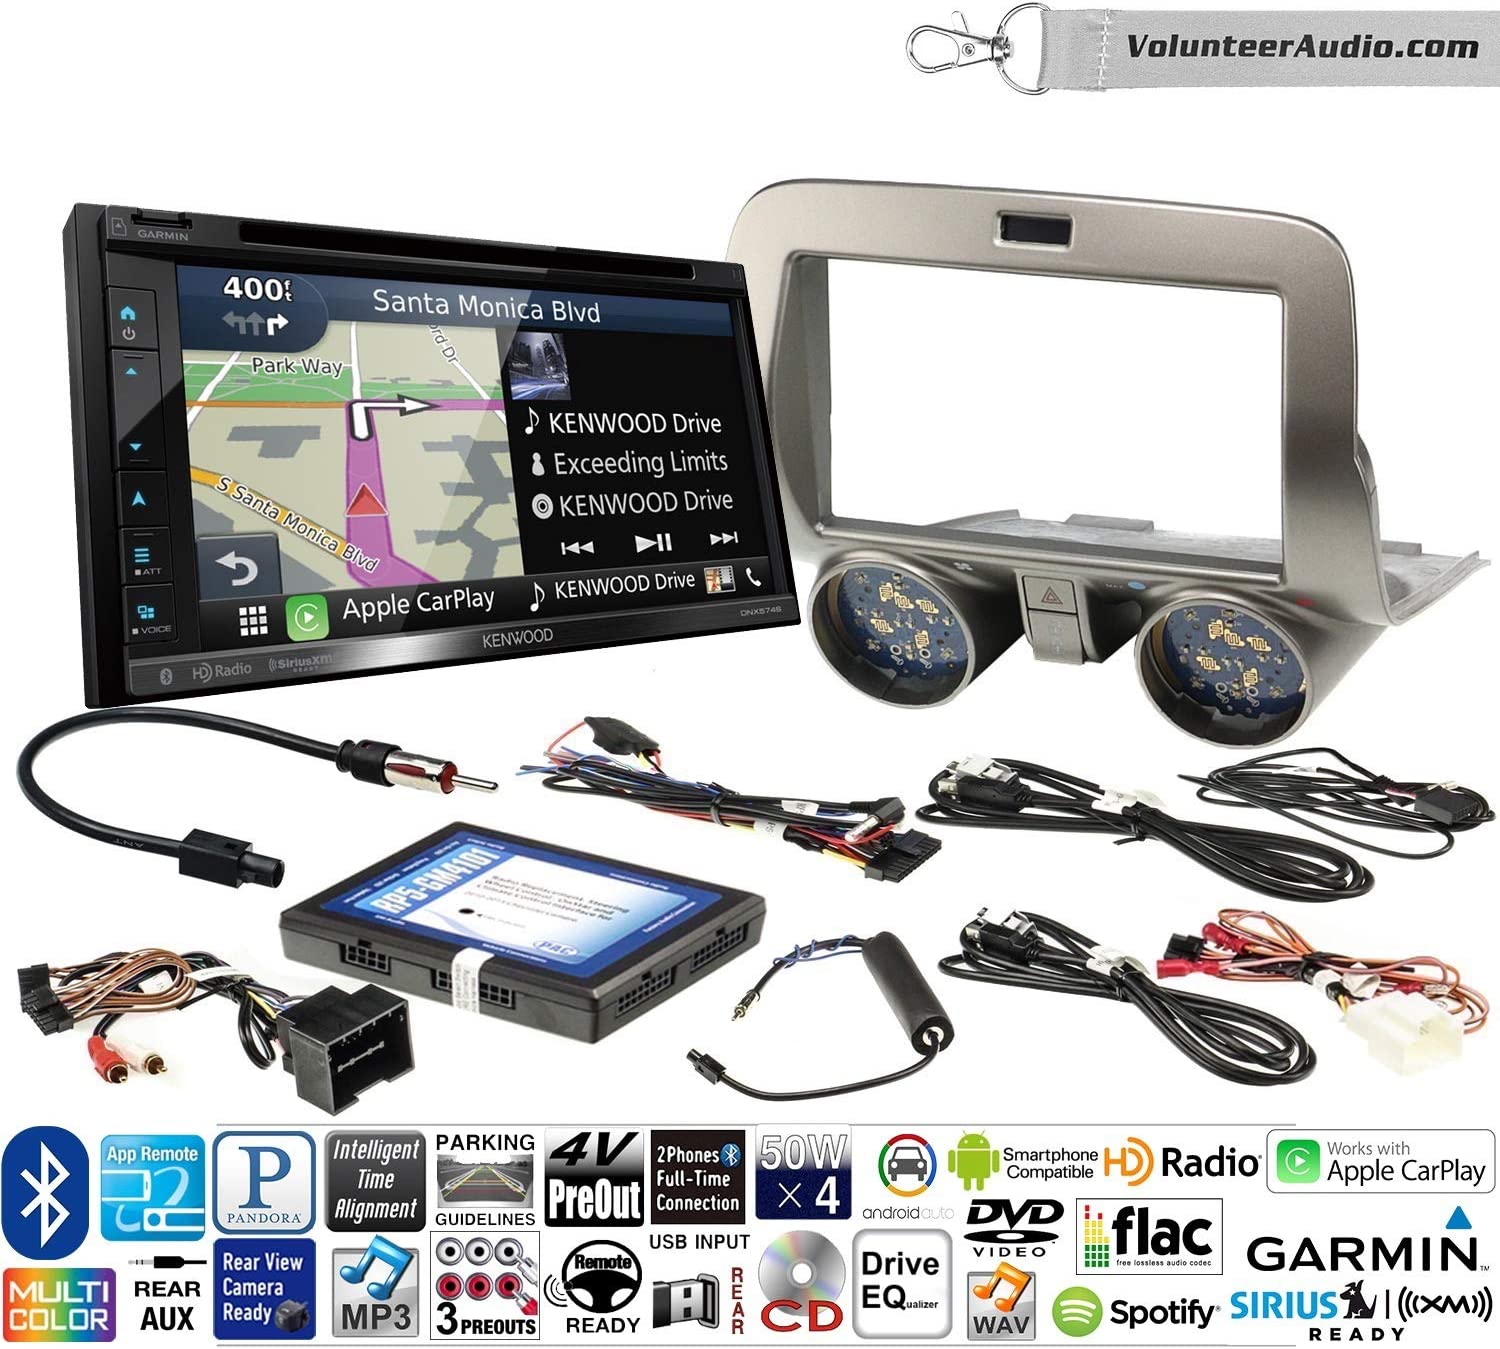 B07C22VHMD Volunteer Audio Kenwood DNX574S Double Din Radio Install Kit with GPS Navigation Apple CarPlay Android Auto Fits 2010-2015 Chevrolet Camaro 81EnbzGs5TL.SL1500_